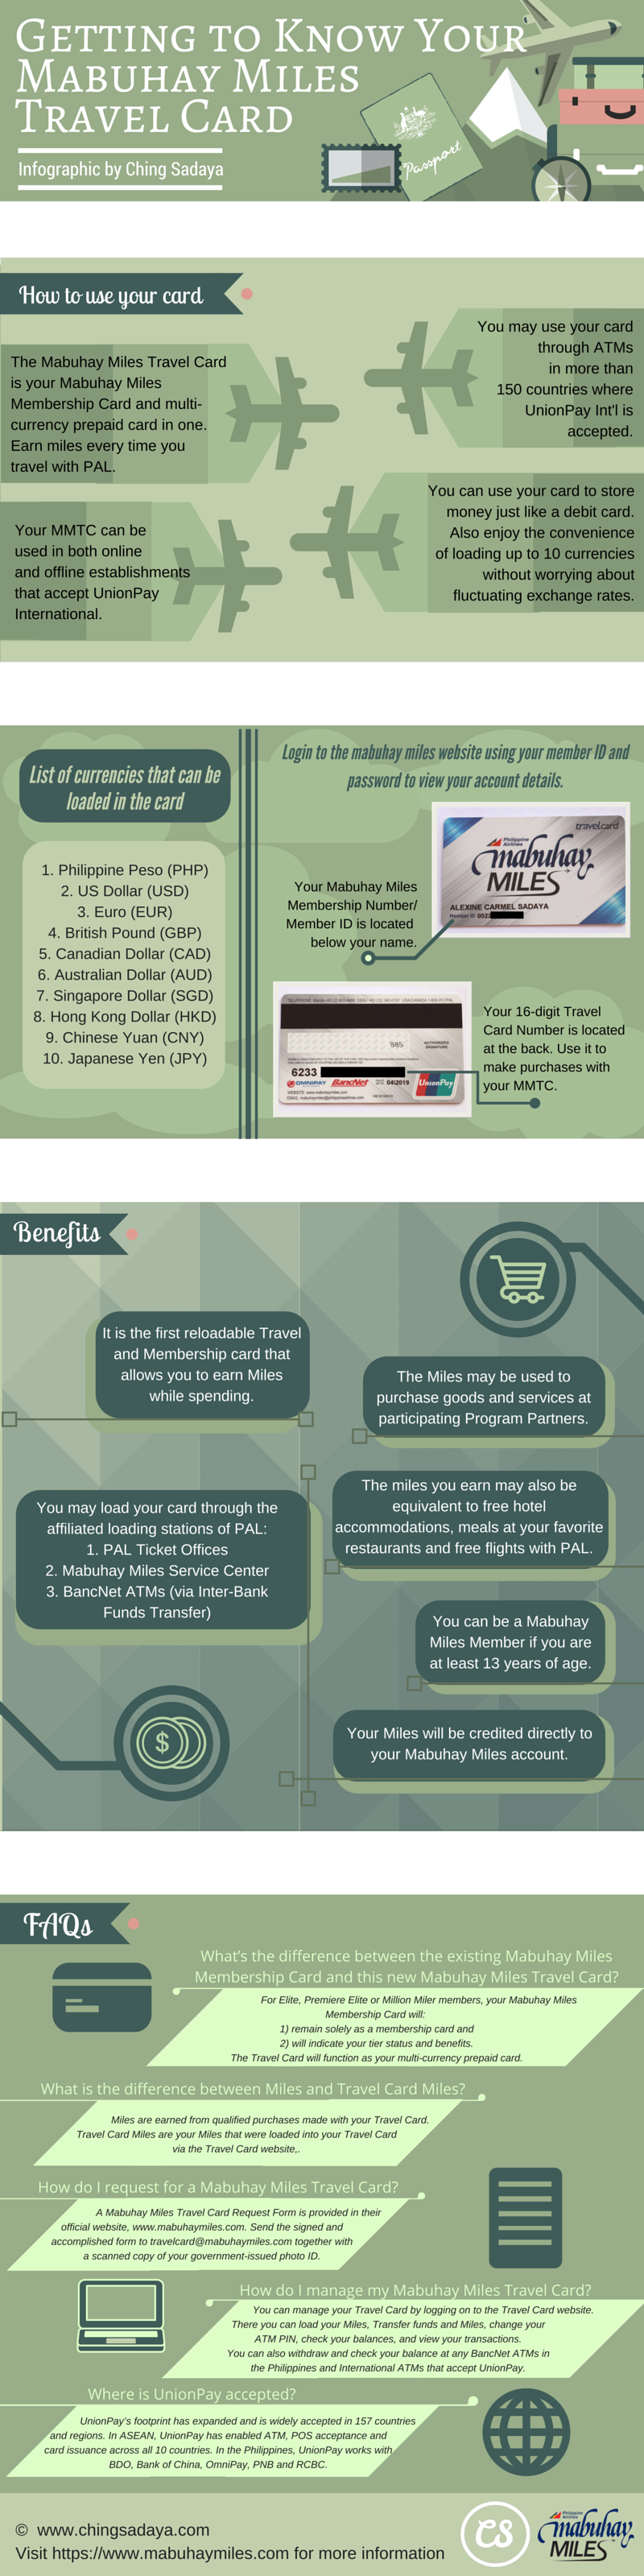 PAL Getting to Know Your Mabuhay Miles Travel Card Infographic by Ching Sadaya final